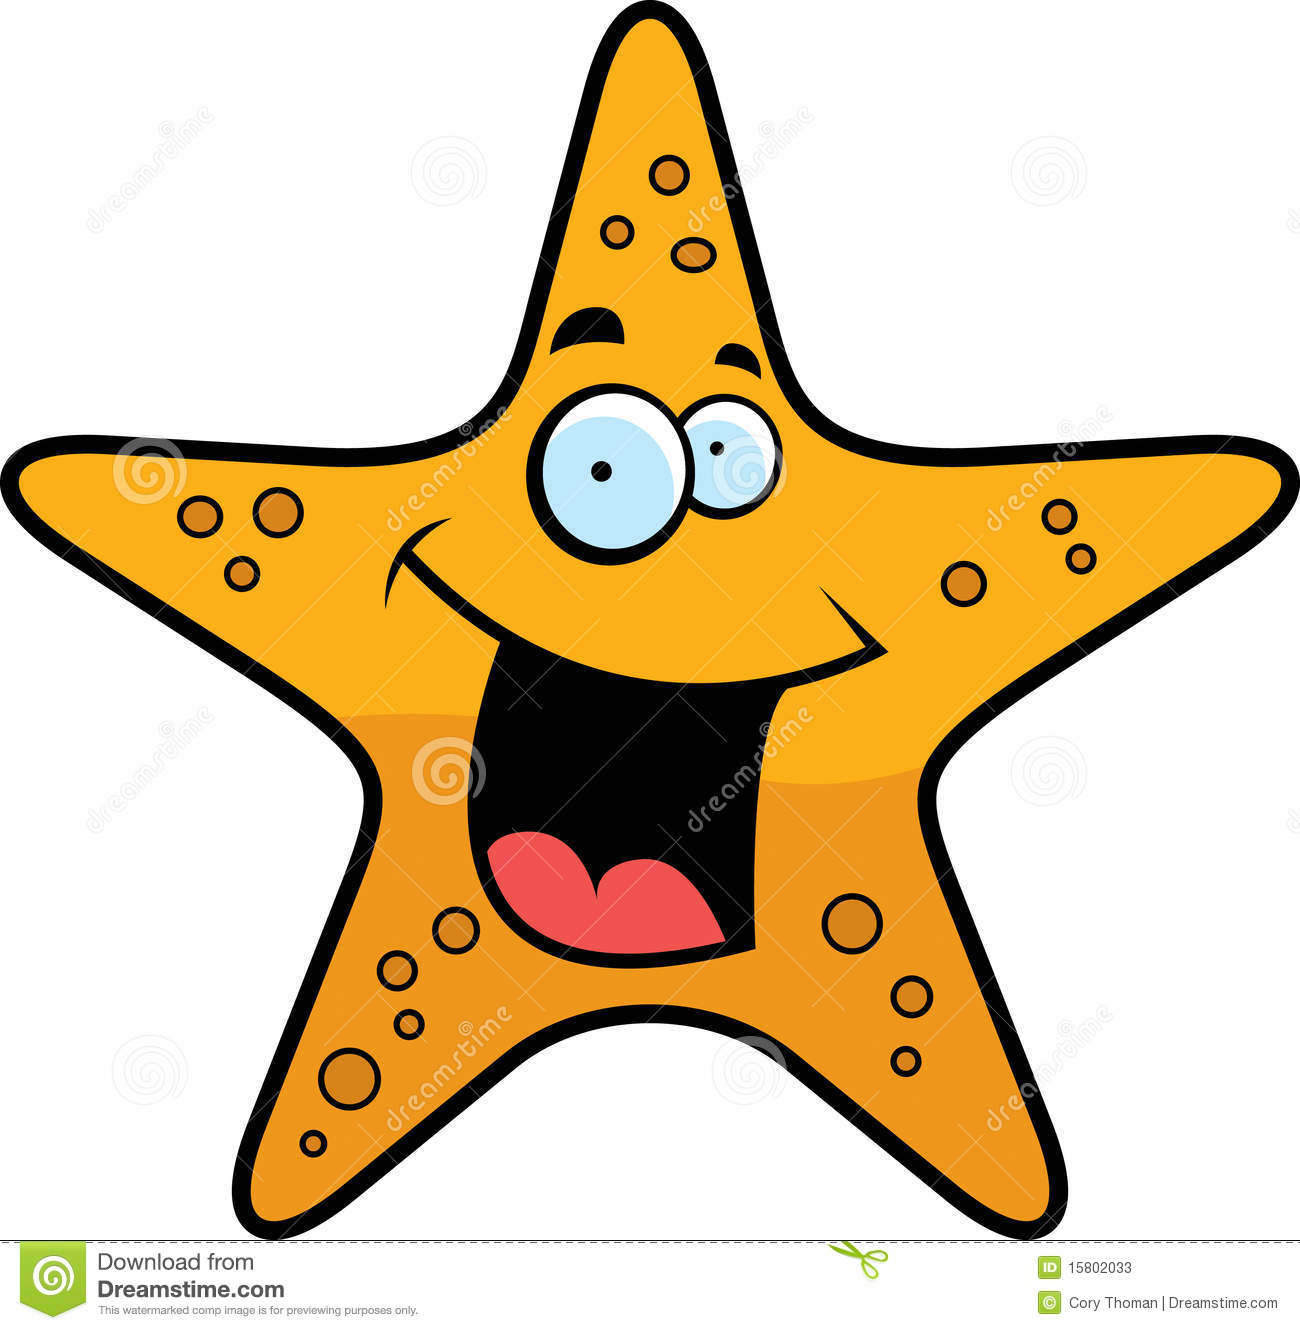 starfish smiling stock vector illustration of cheerful gold star clip art free png Gold Star Clip Art Printable